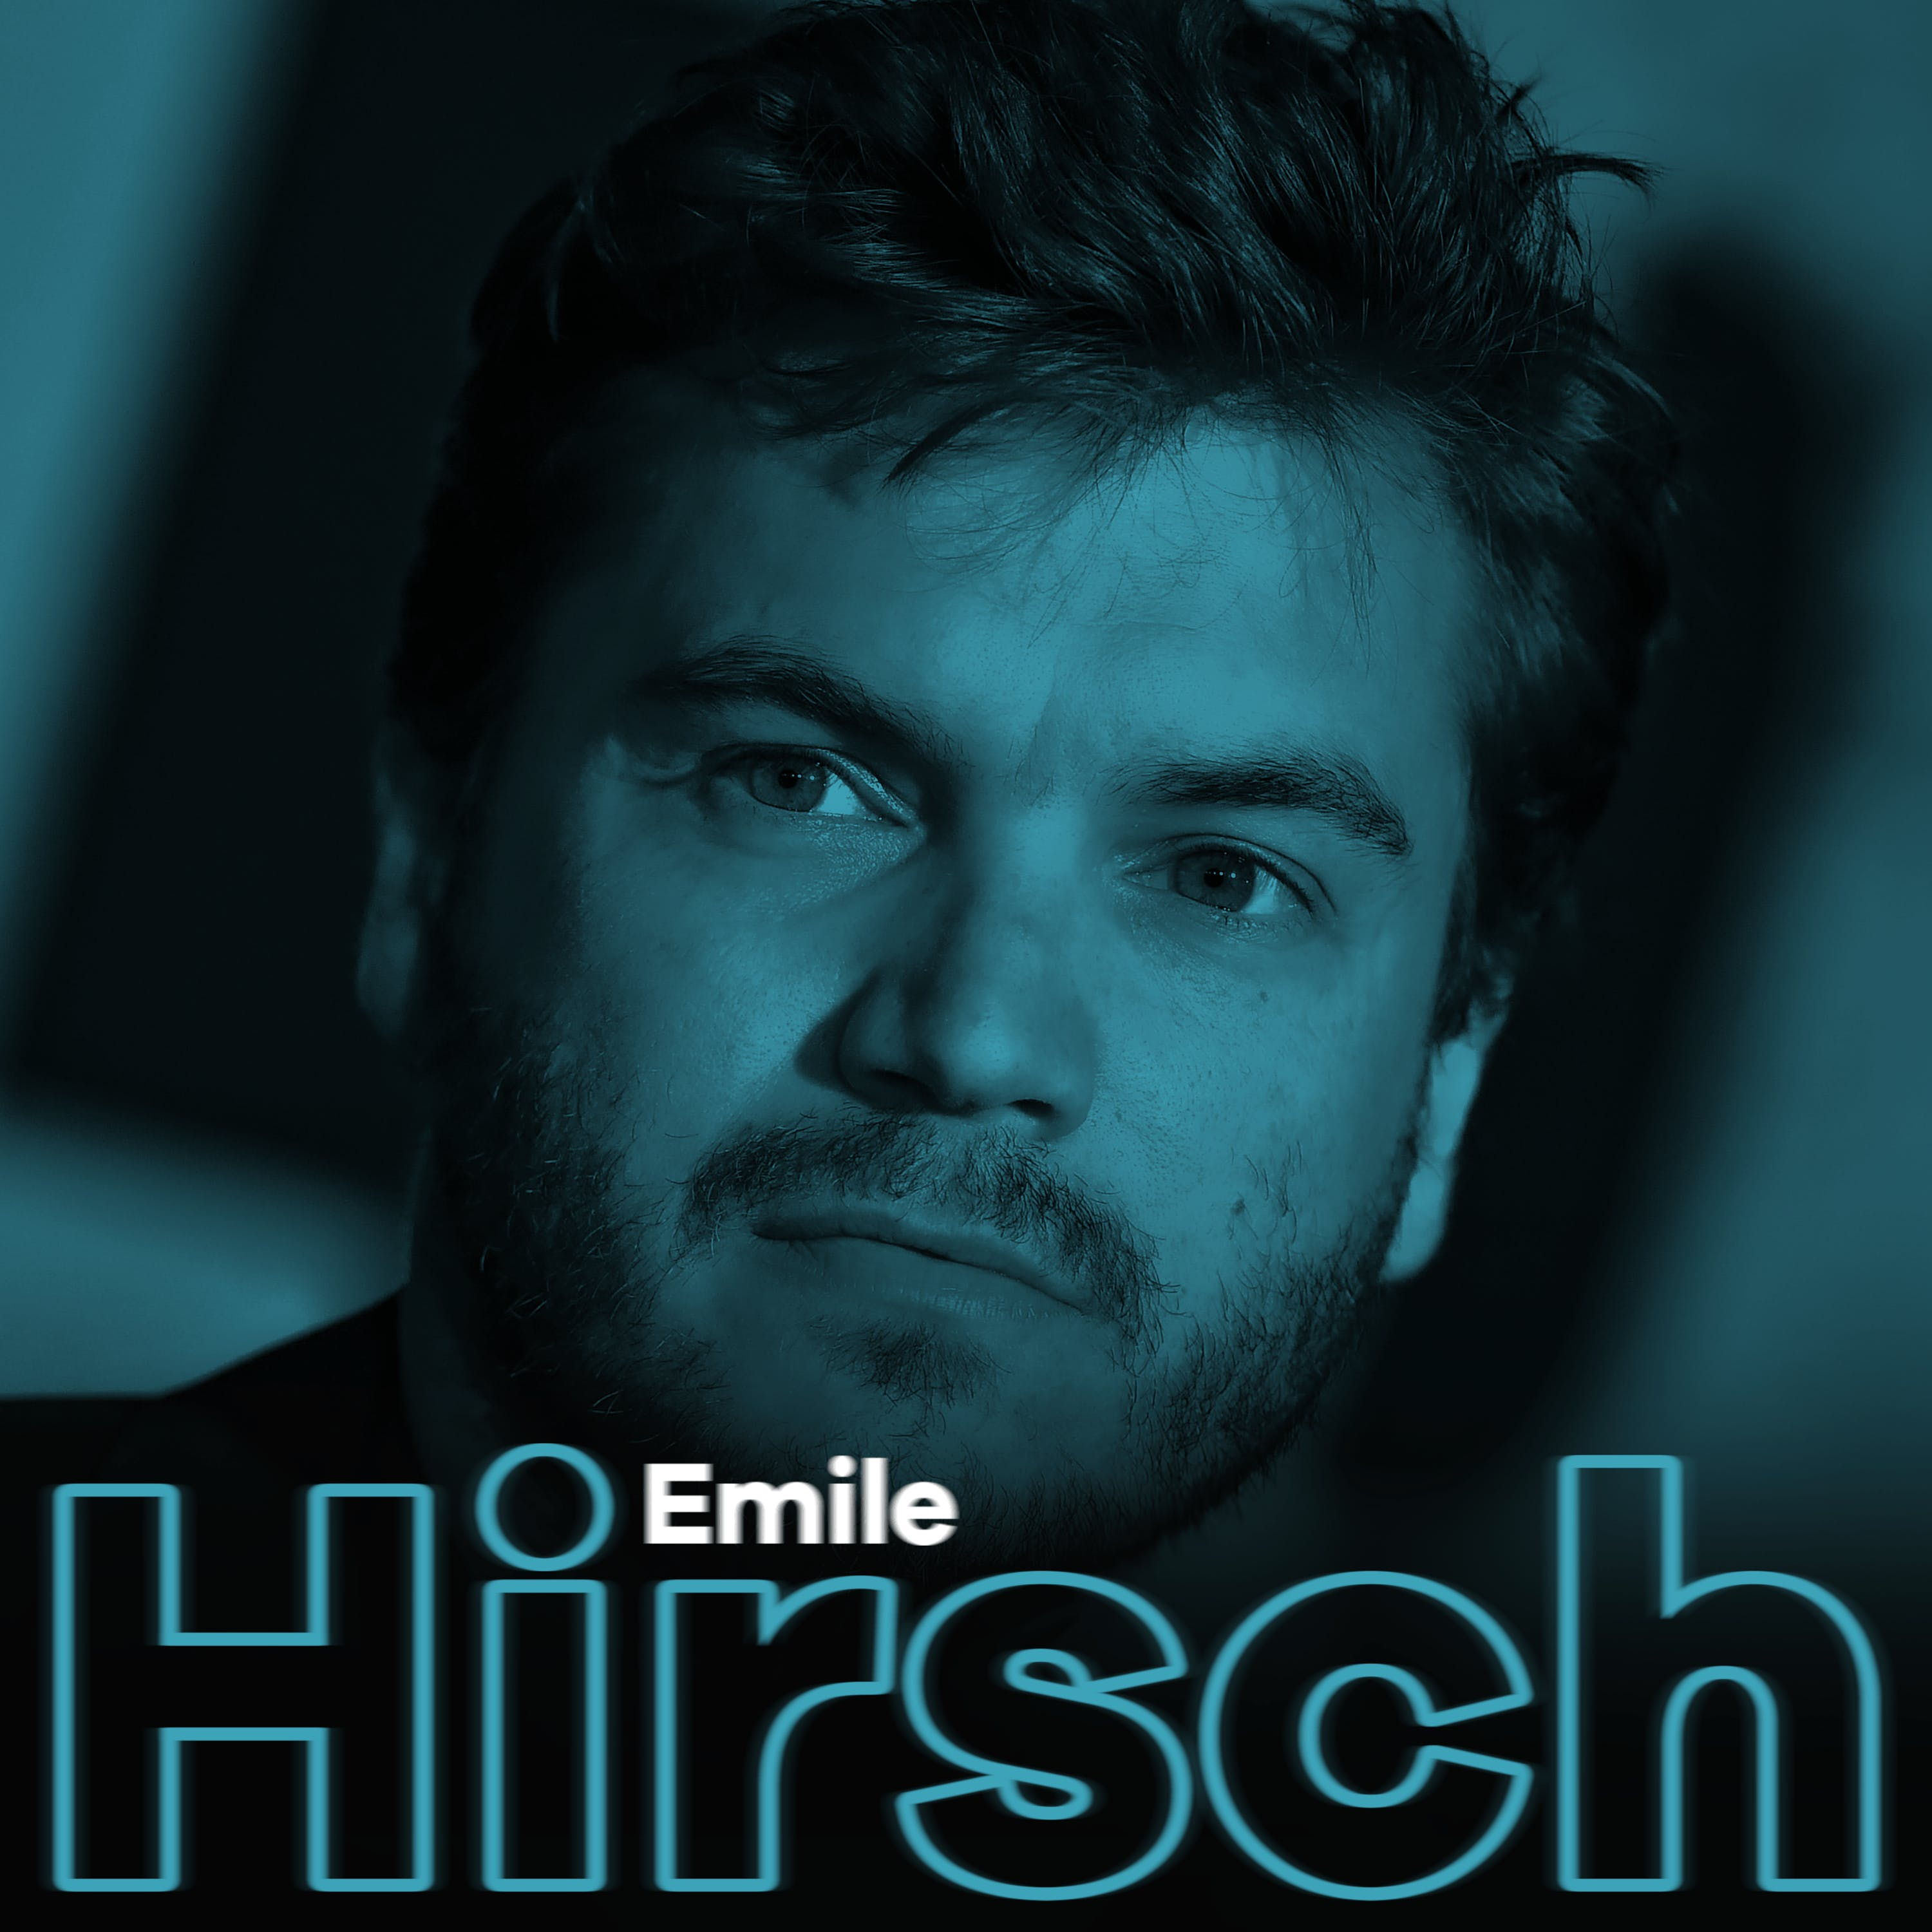 Emile Hirsch: Into the Wild & Impostor Syndrome